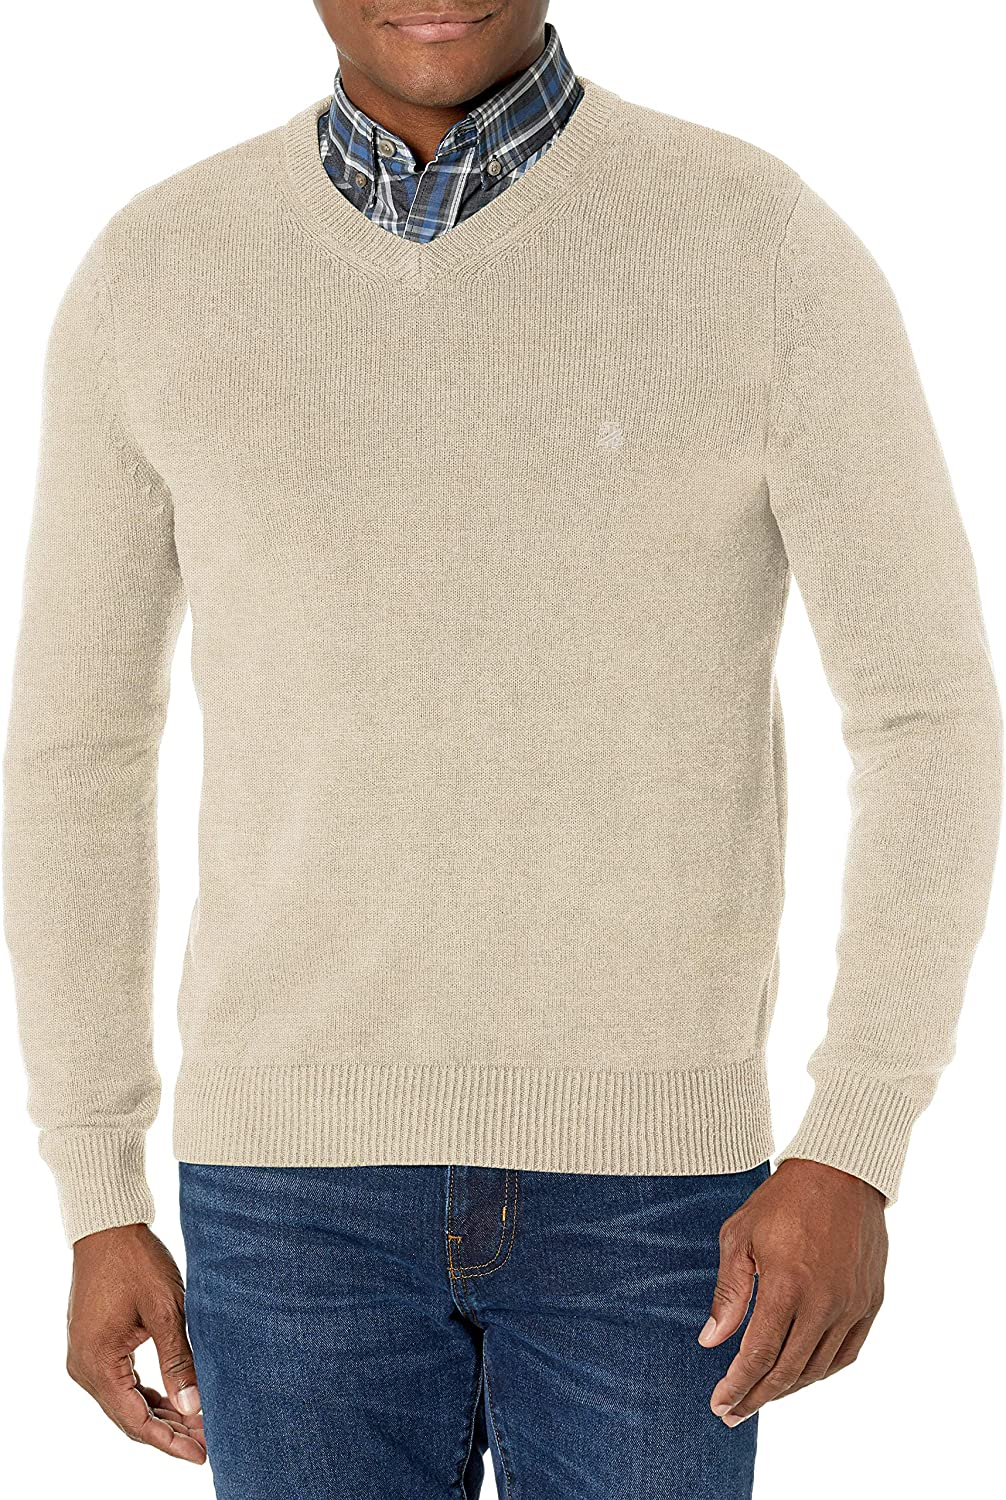 IZOD Sales of SALE items from new works Ranking TOP4 Men's V-Neck 7gg Sweater Sleeve Long